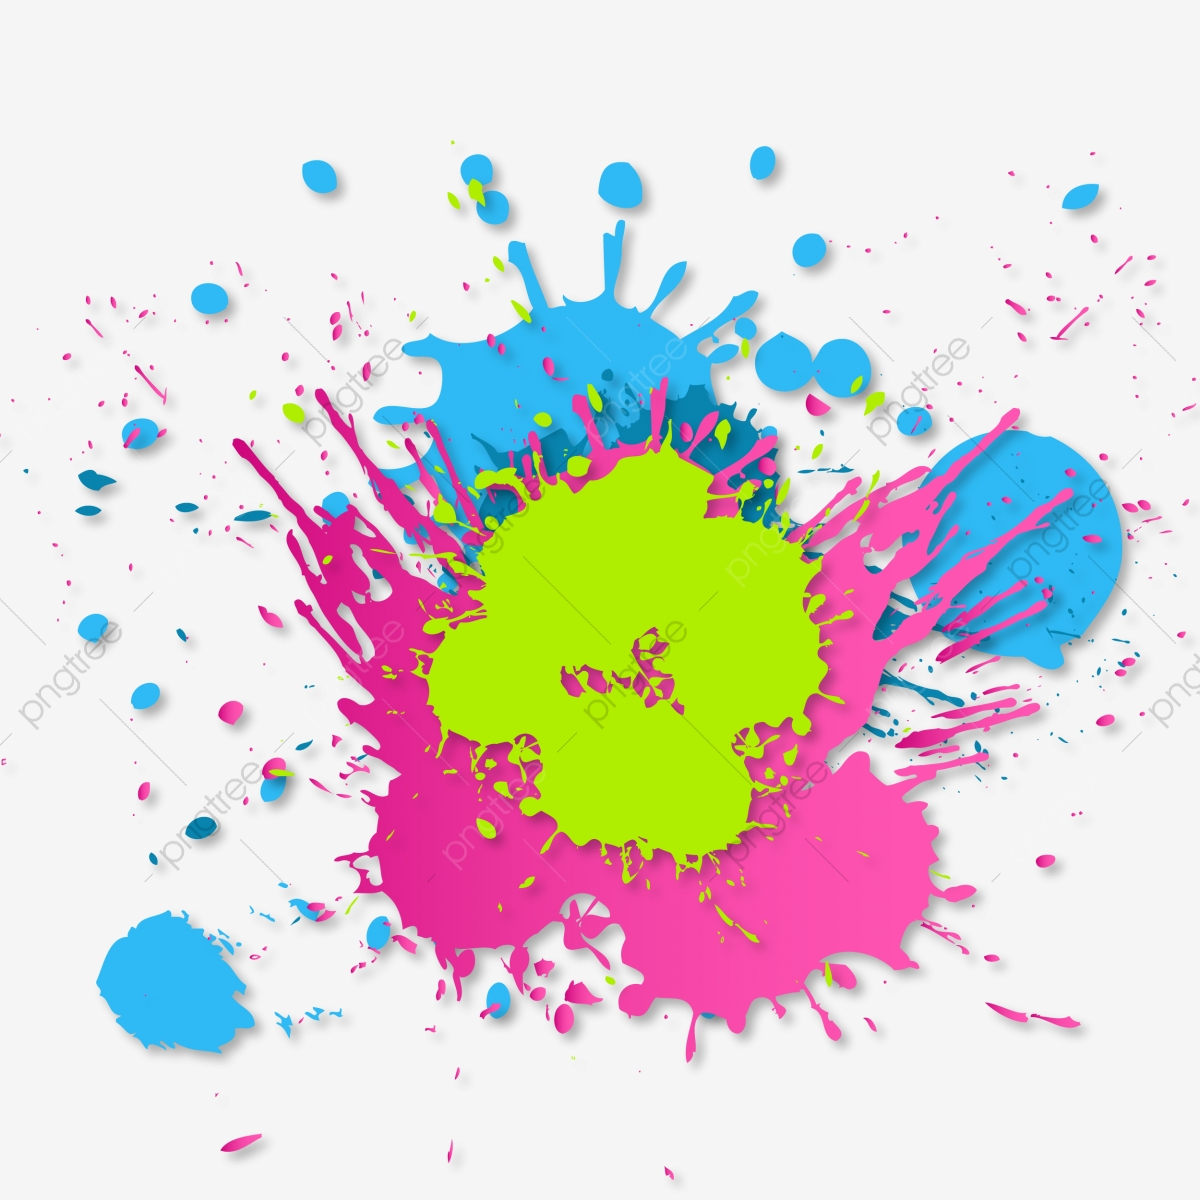 Brush Color Splash Stain, Splash, Color, Watercolor PNG and Vector.